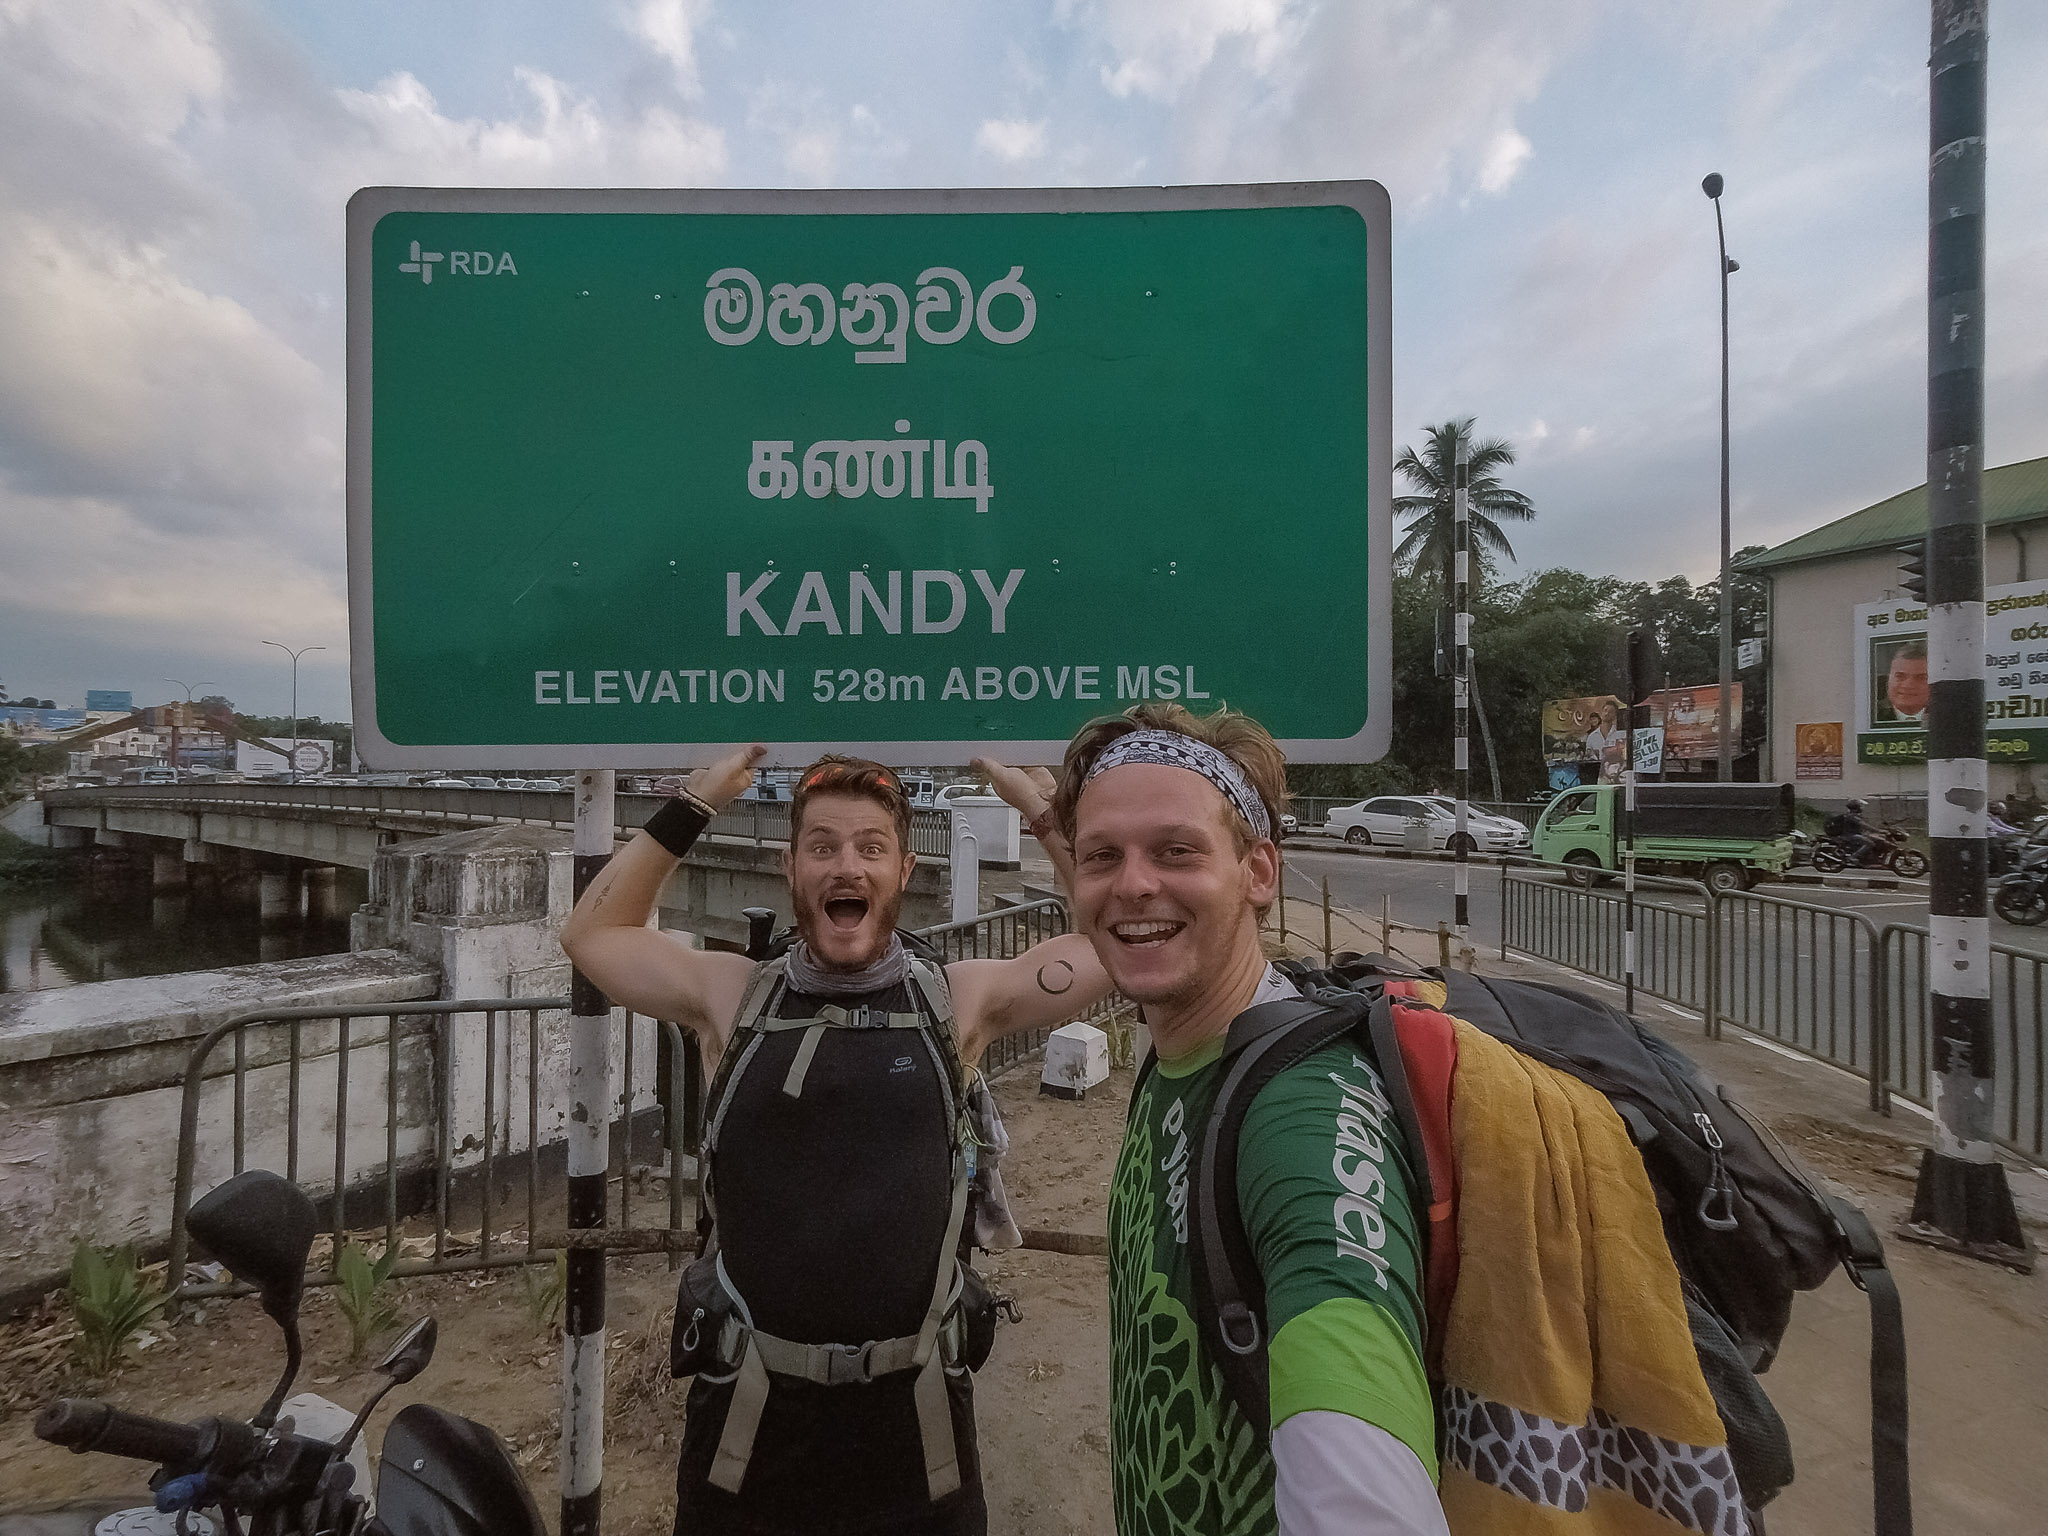 Arrival in Kandy